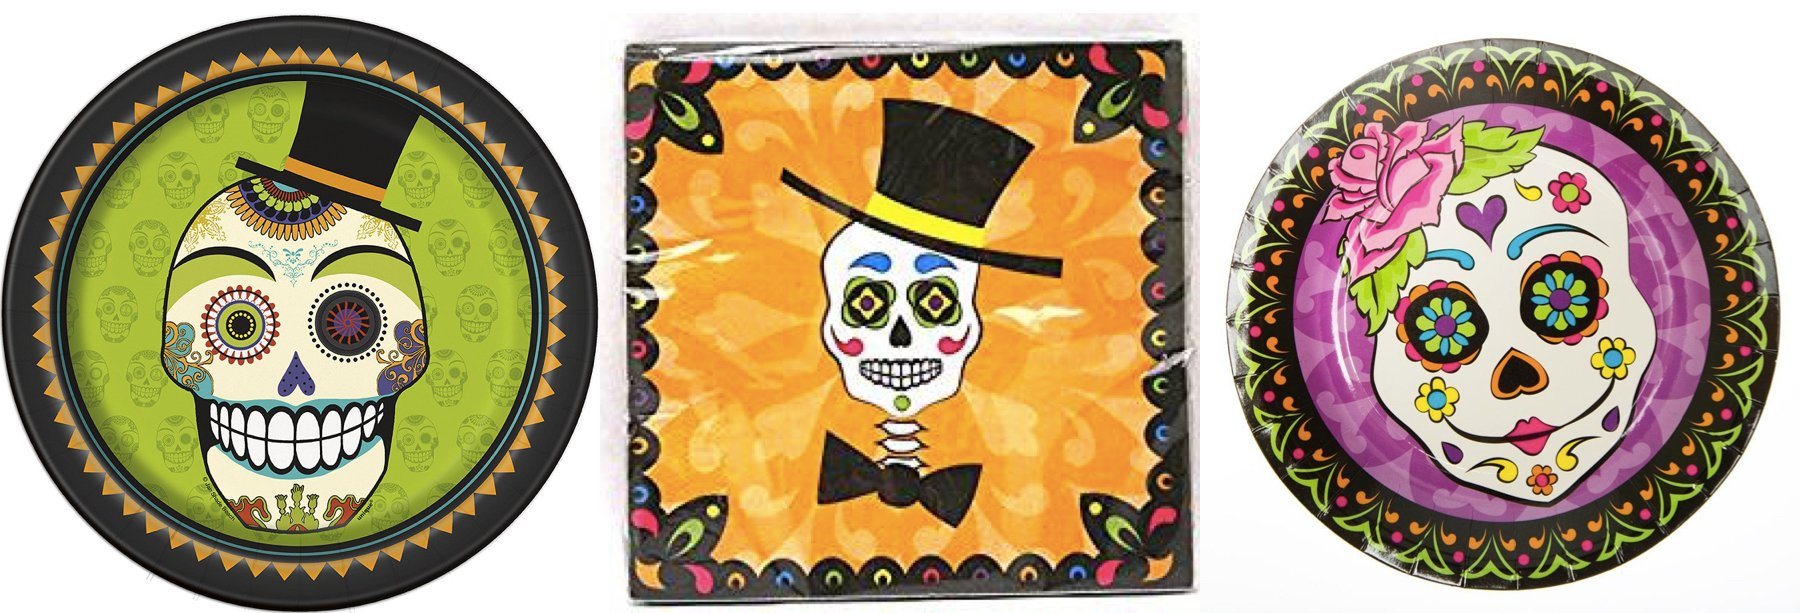 Day of the Dead Party Goods & Supplies